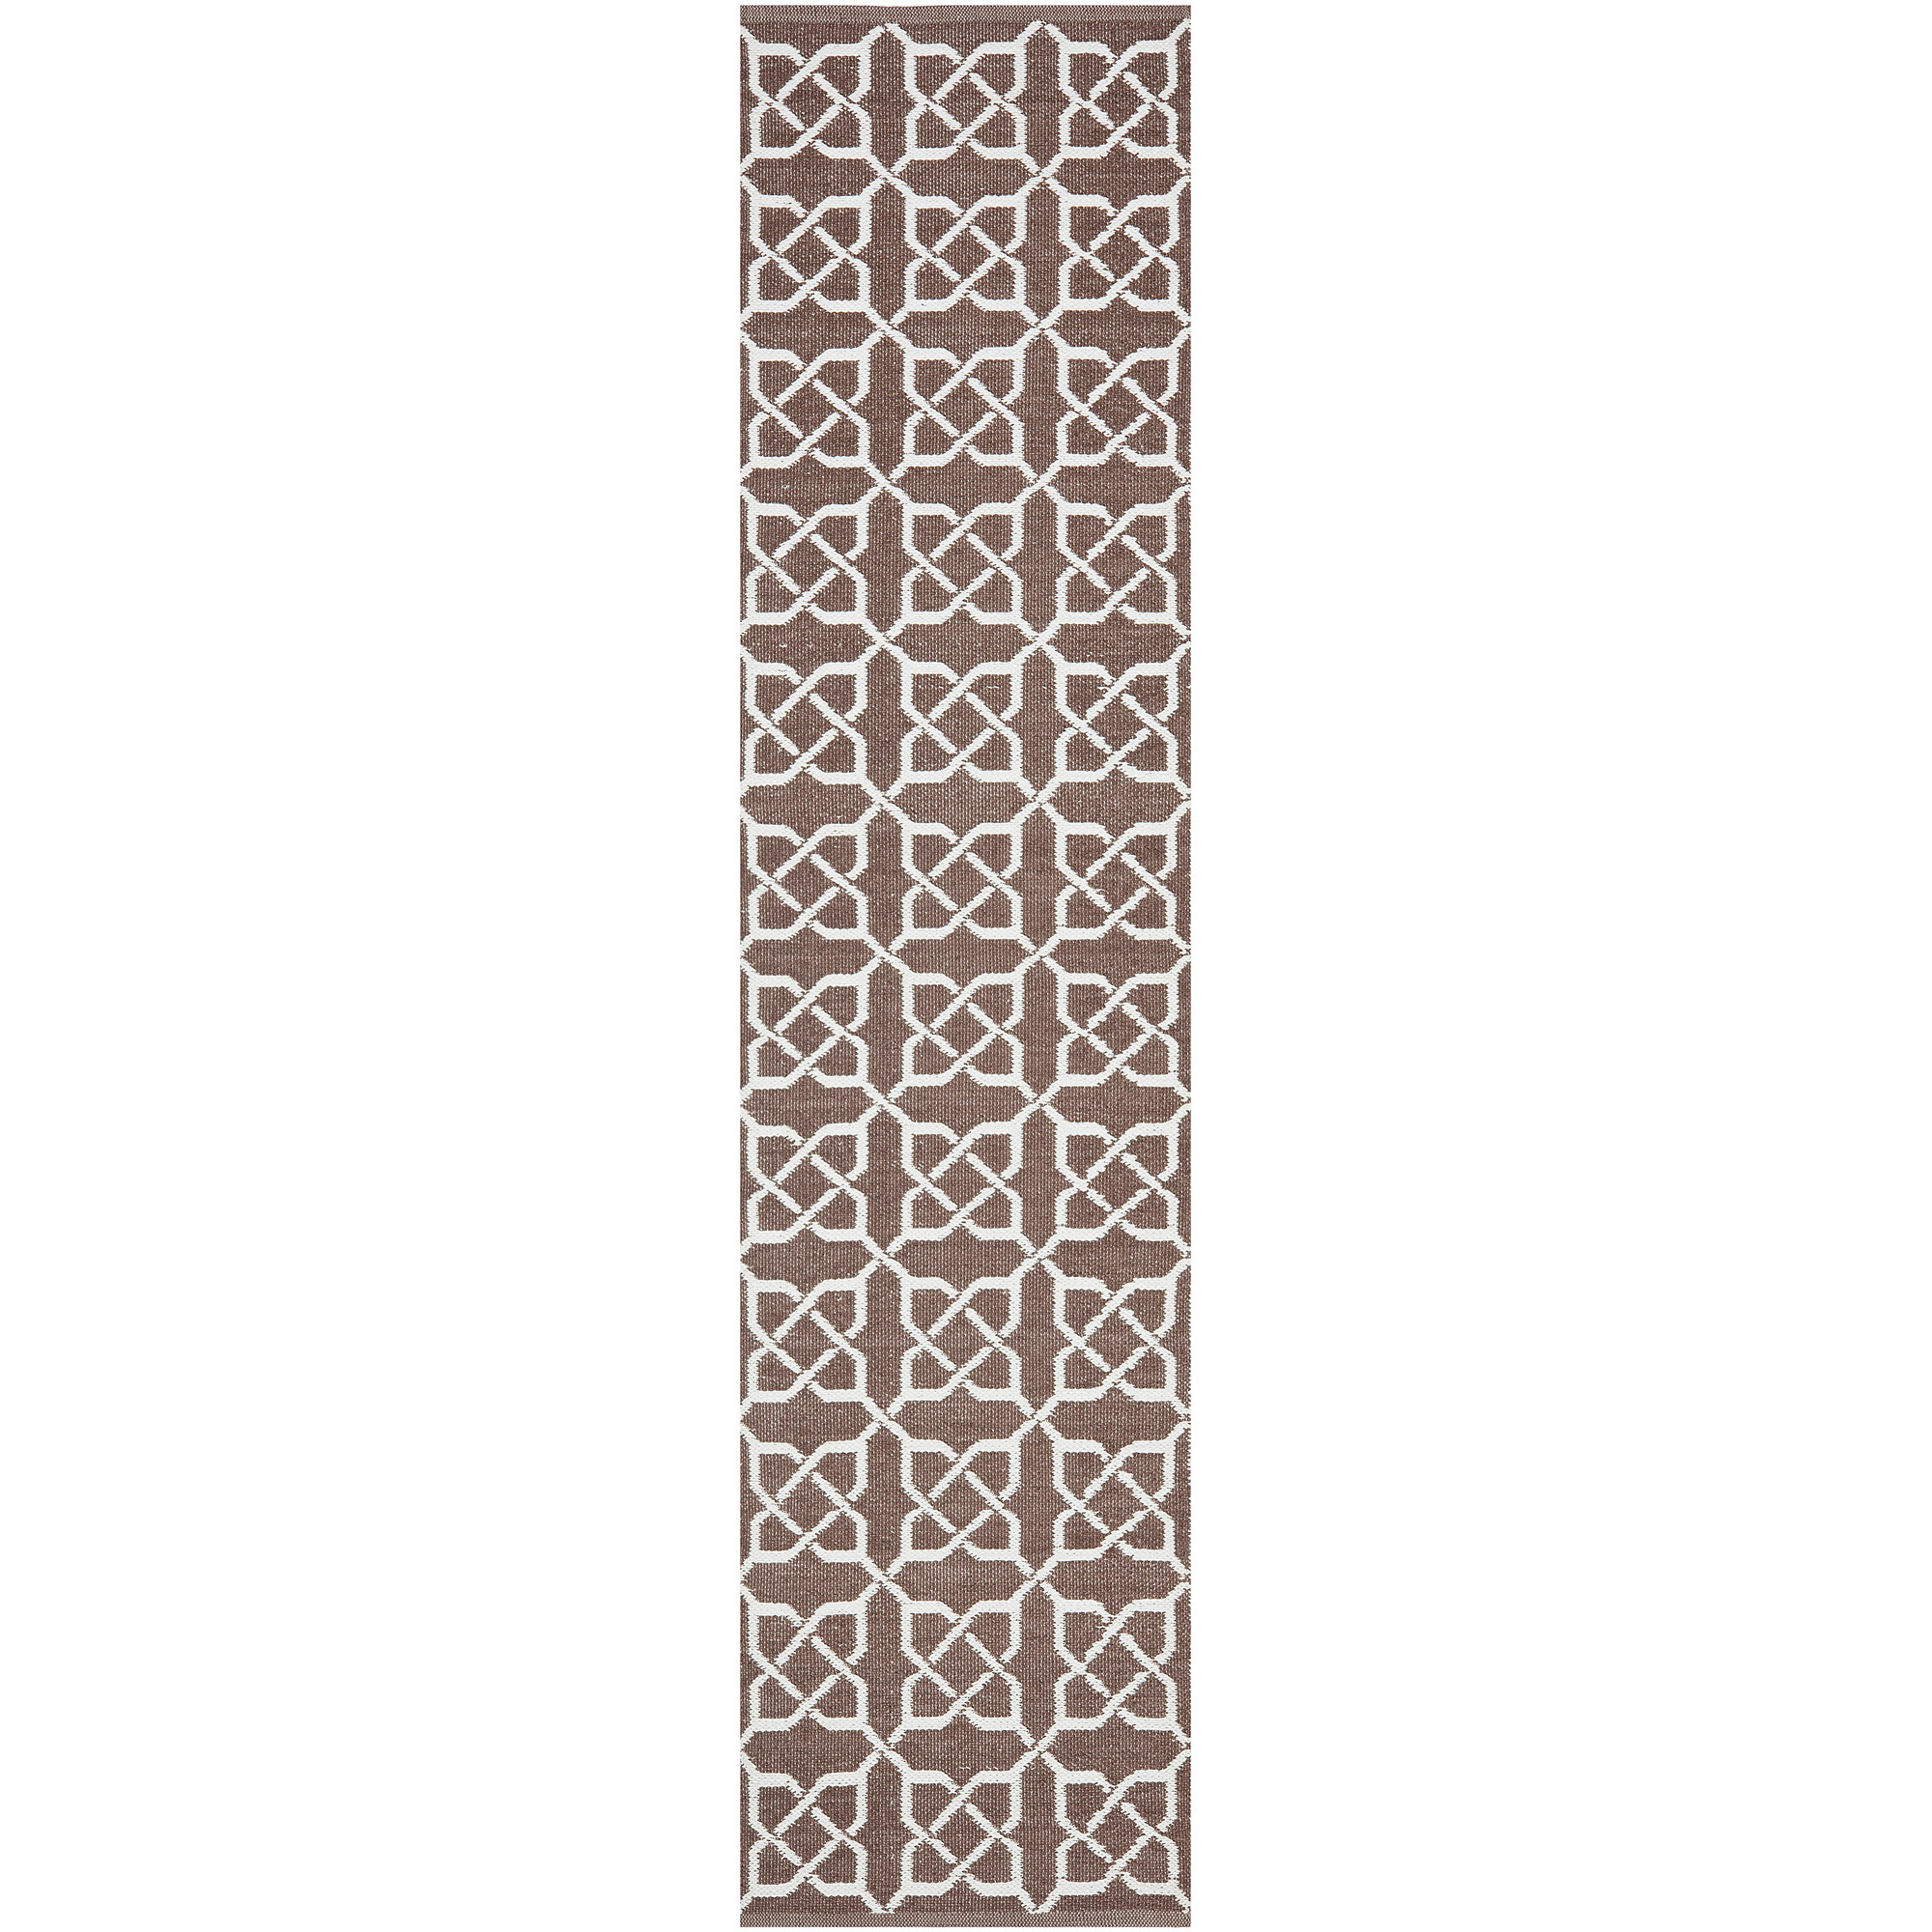 Safavieh Thom Filicia Mattie Indoor/Outdoor Runner Rug